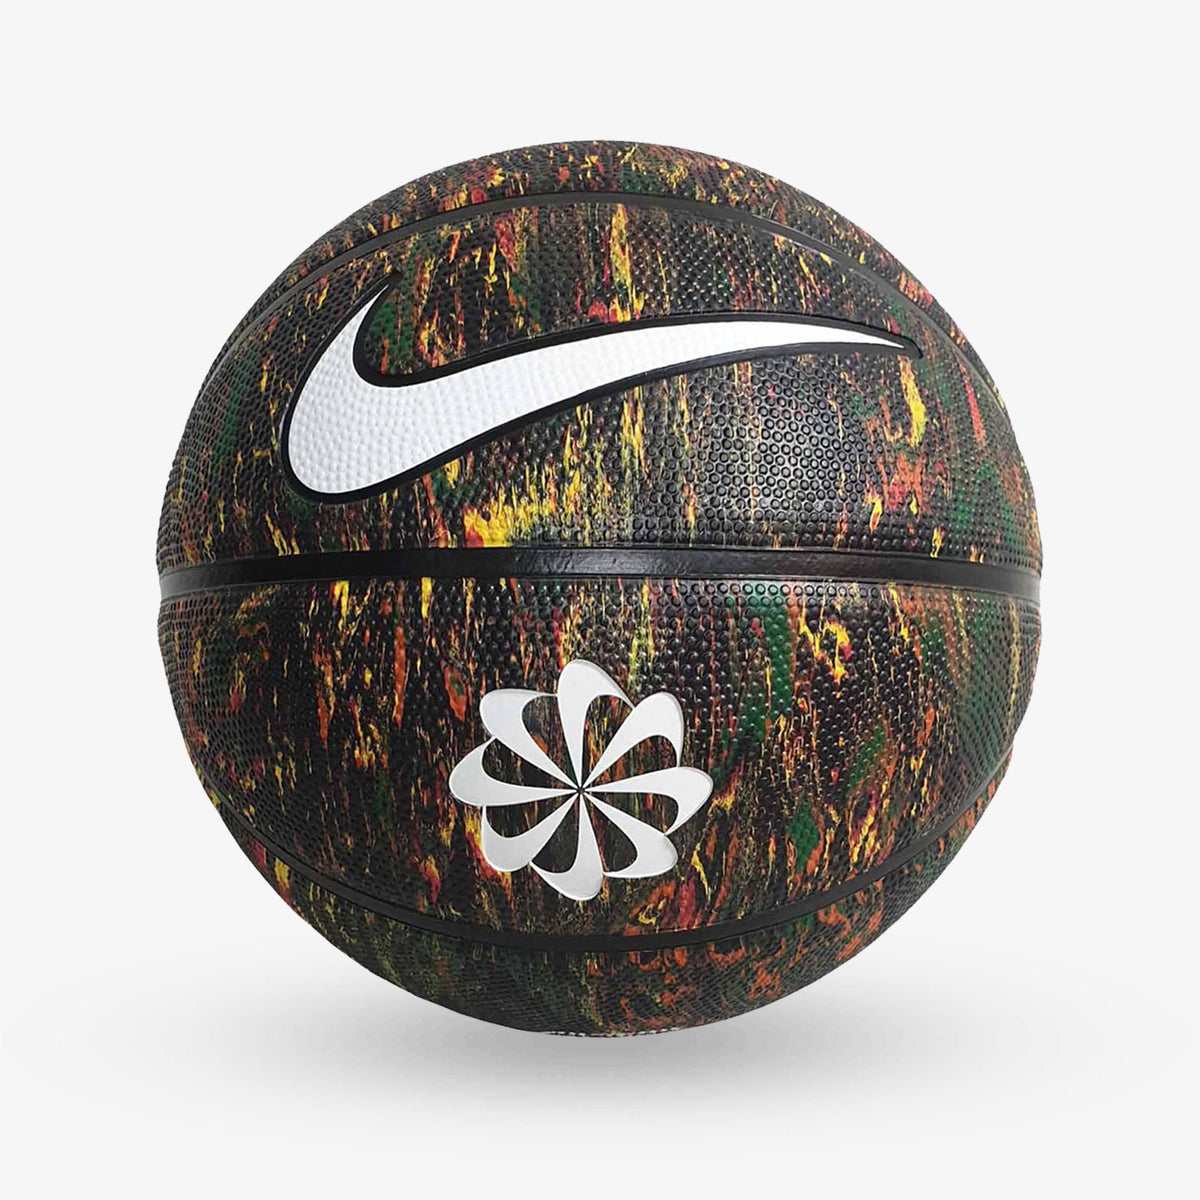 Nike Revival Basketball - Black/Multi - Size 7